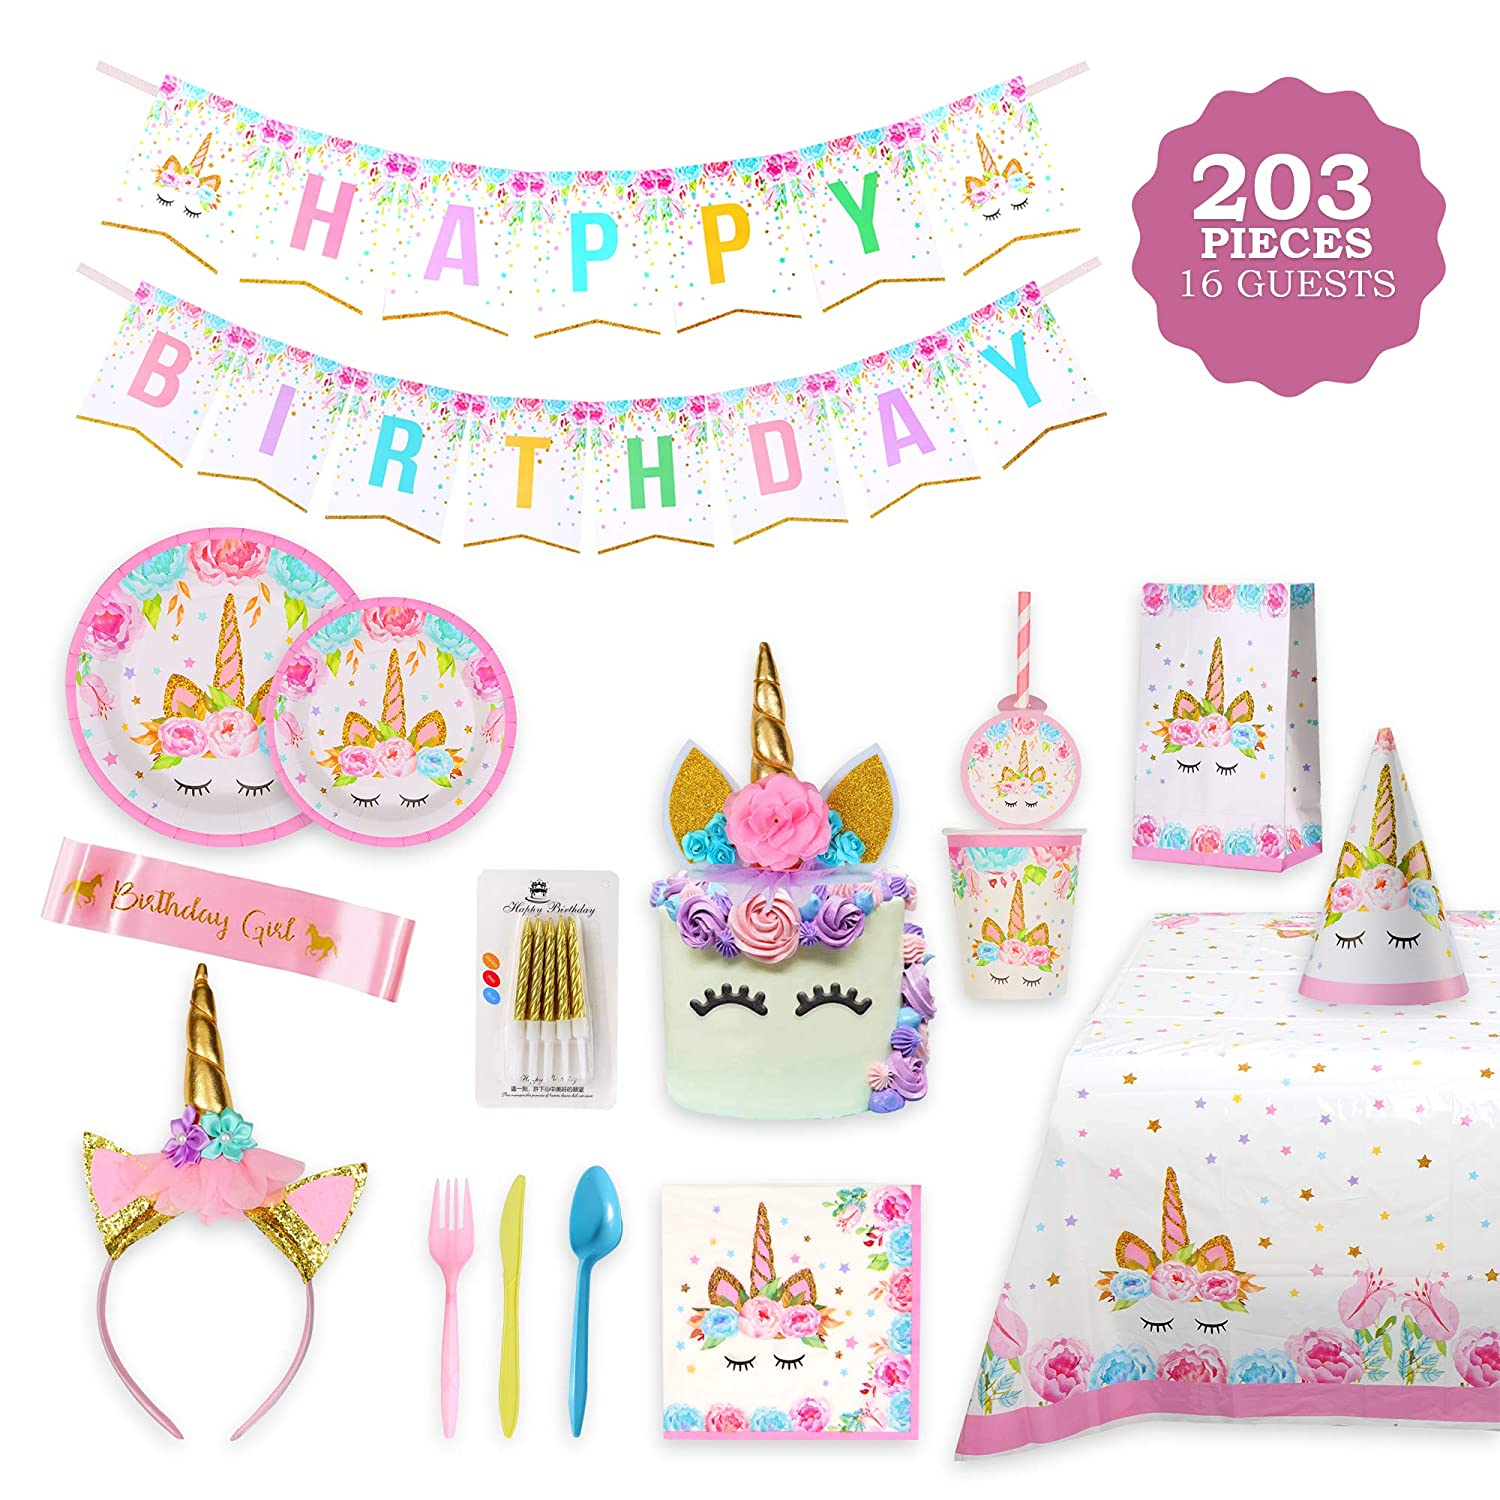 MAGICAL UNICORN FRINGE BLOWOUTS PACK OF 8 BIRTHDAY PARTY SUPPLIES BLOWERS